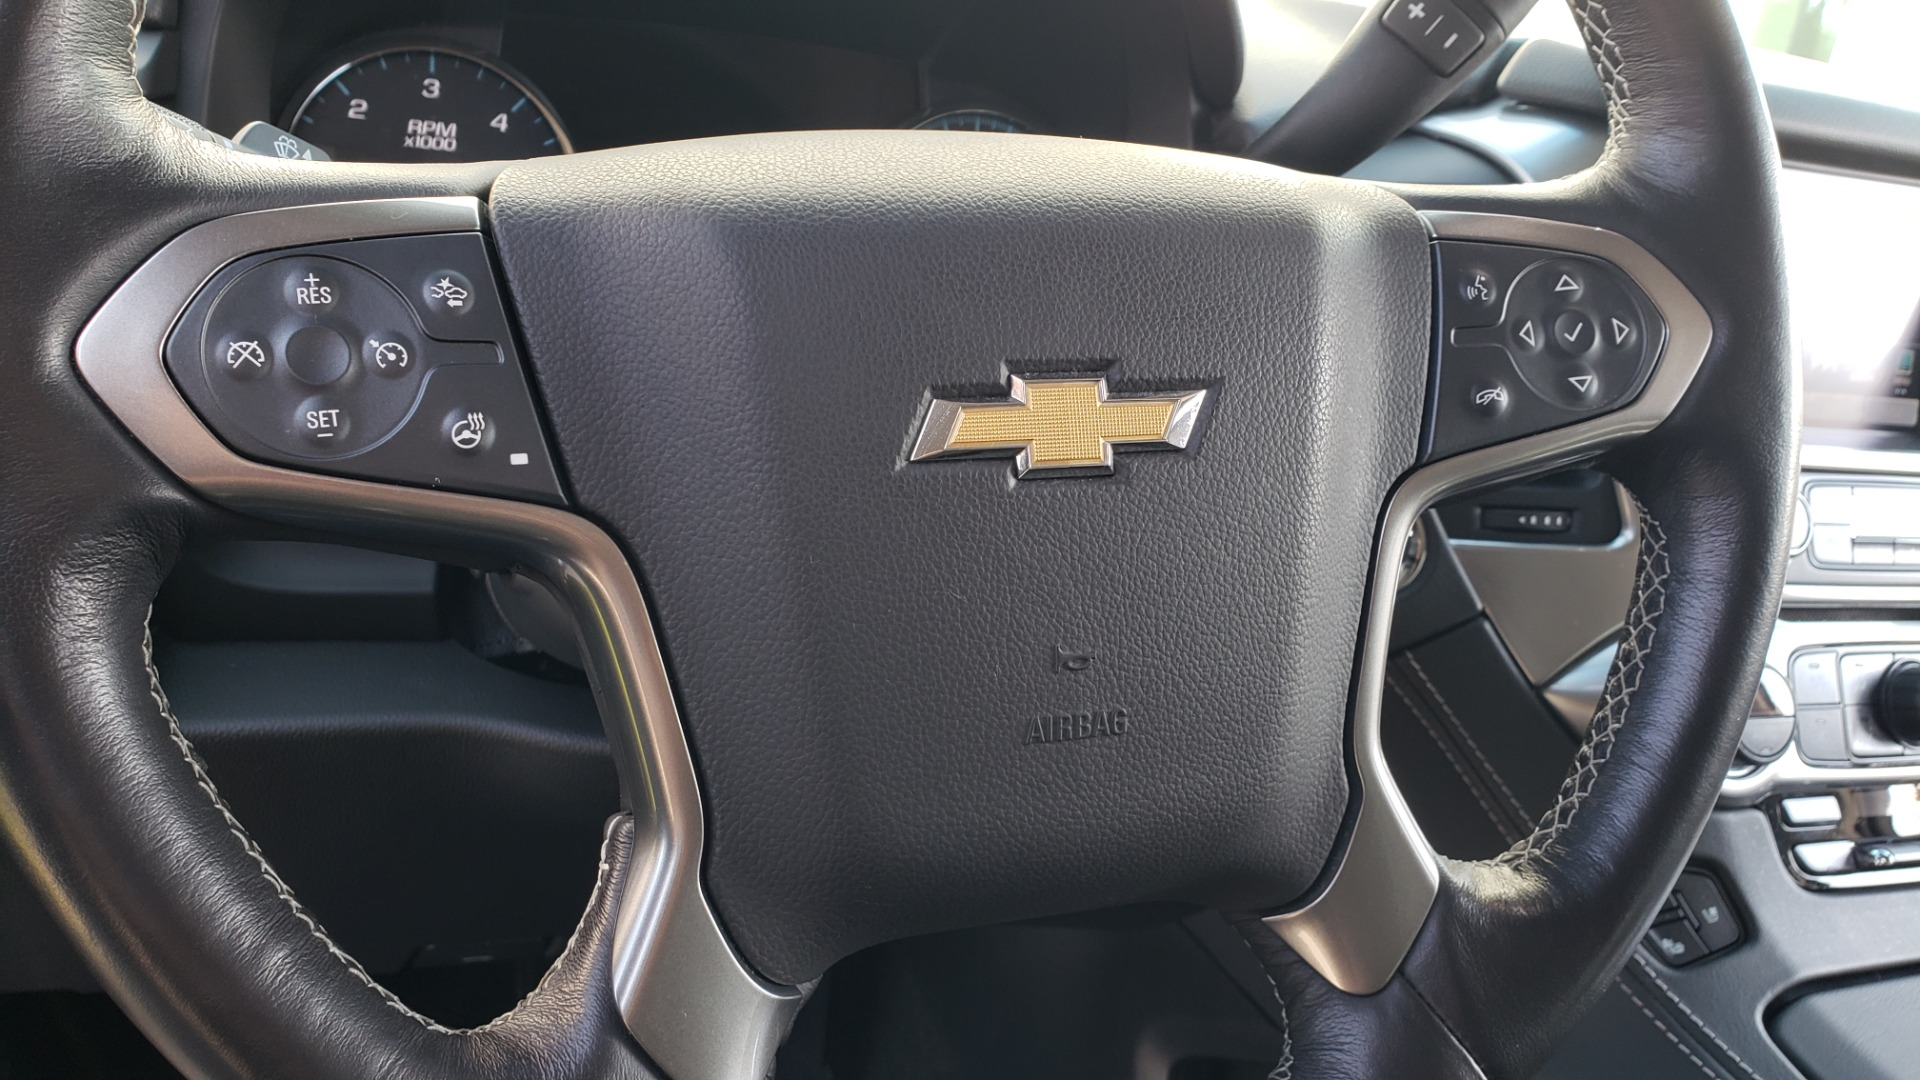 Used 2018 Chevrolet TAHOE PREMIER RST / 4X4 / NAV / BOSE / SUNROOF / 3-ROW / REARVIEW for sale $65,995 at Formula Imports in Charlotte NC 28227 40